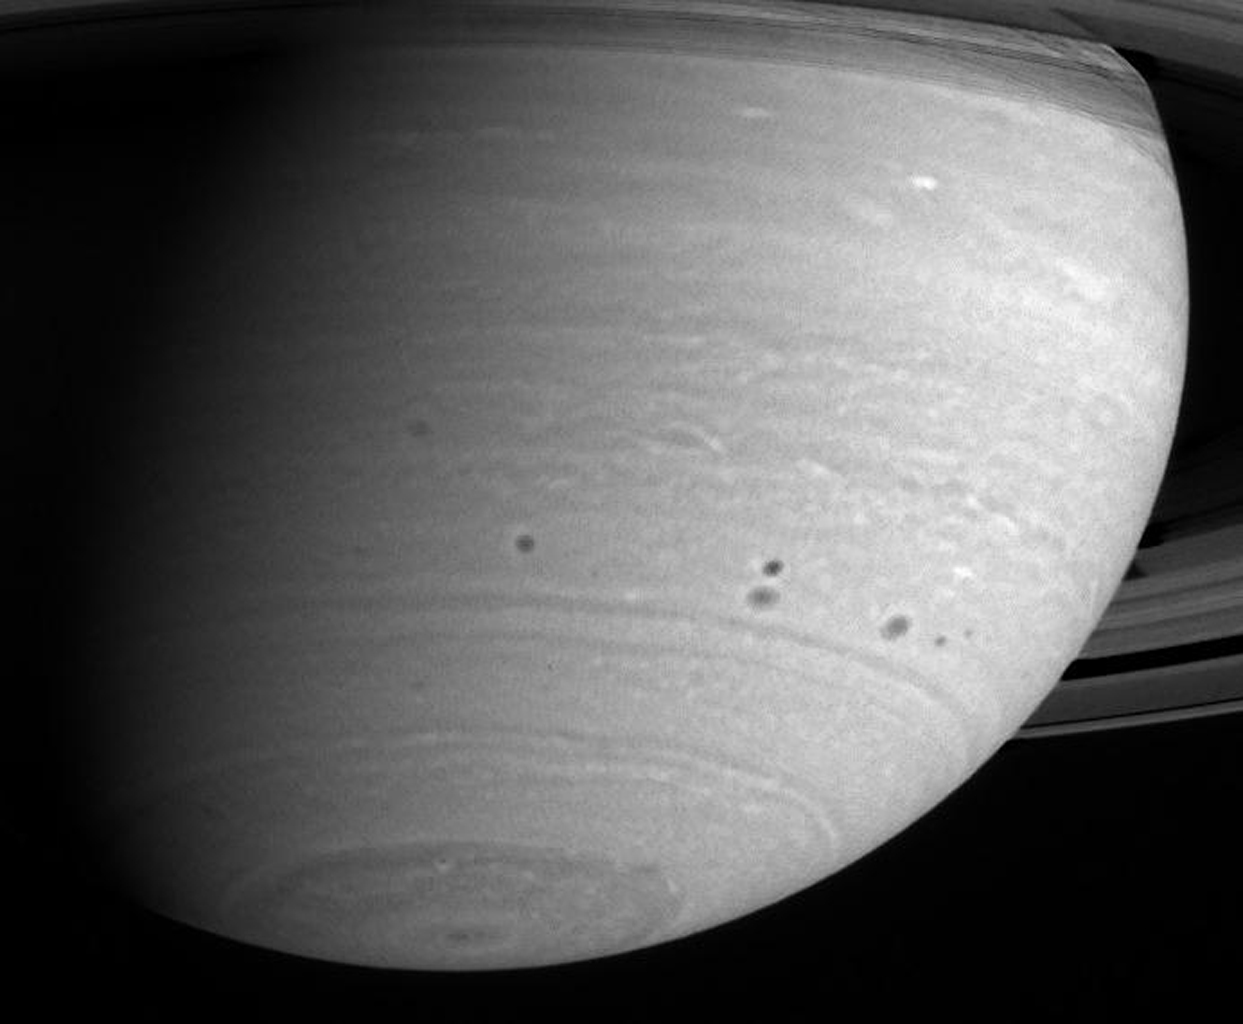 Cassini continues its vigil as Saturn's atmosphere churns and morphs through time. This image from NASA's Cassini spacecraft's was taken on May 15, 2004, from a distance of 24.7 million kilometers (15.3 million miles) from Saturn.